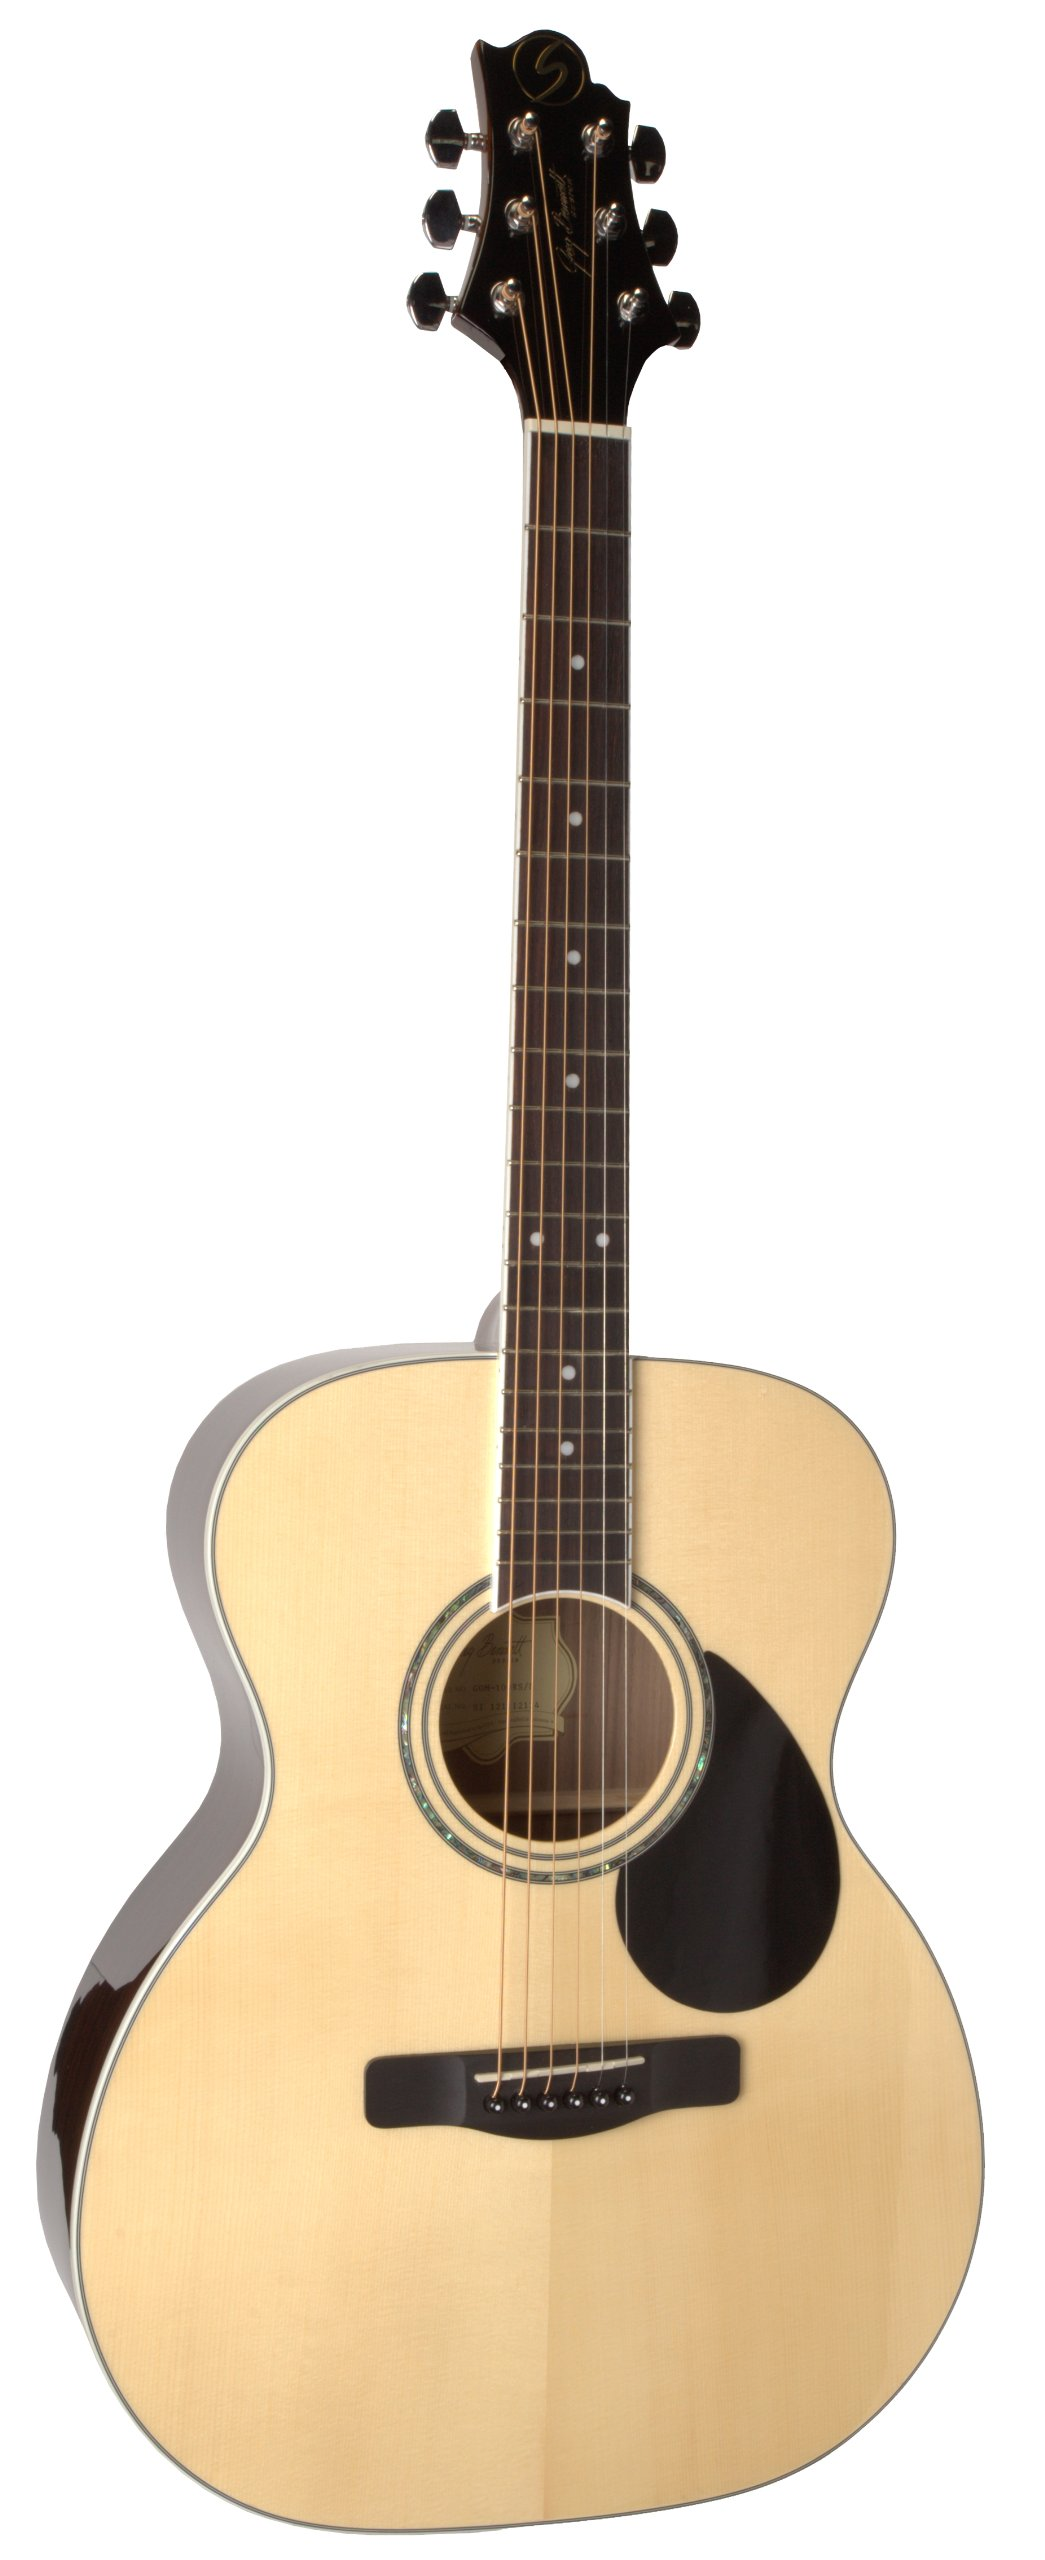 Samick Music G Series 100 GOM100RS Orchestra Body Acoustic Guitar, Natural